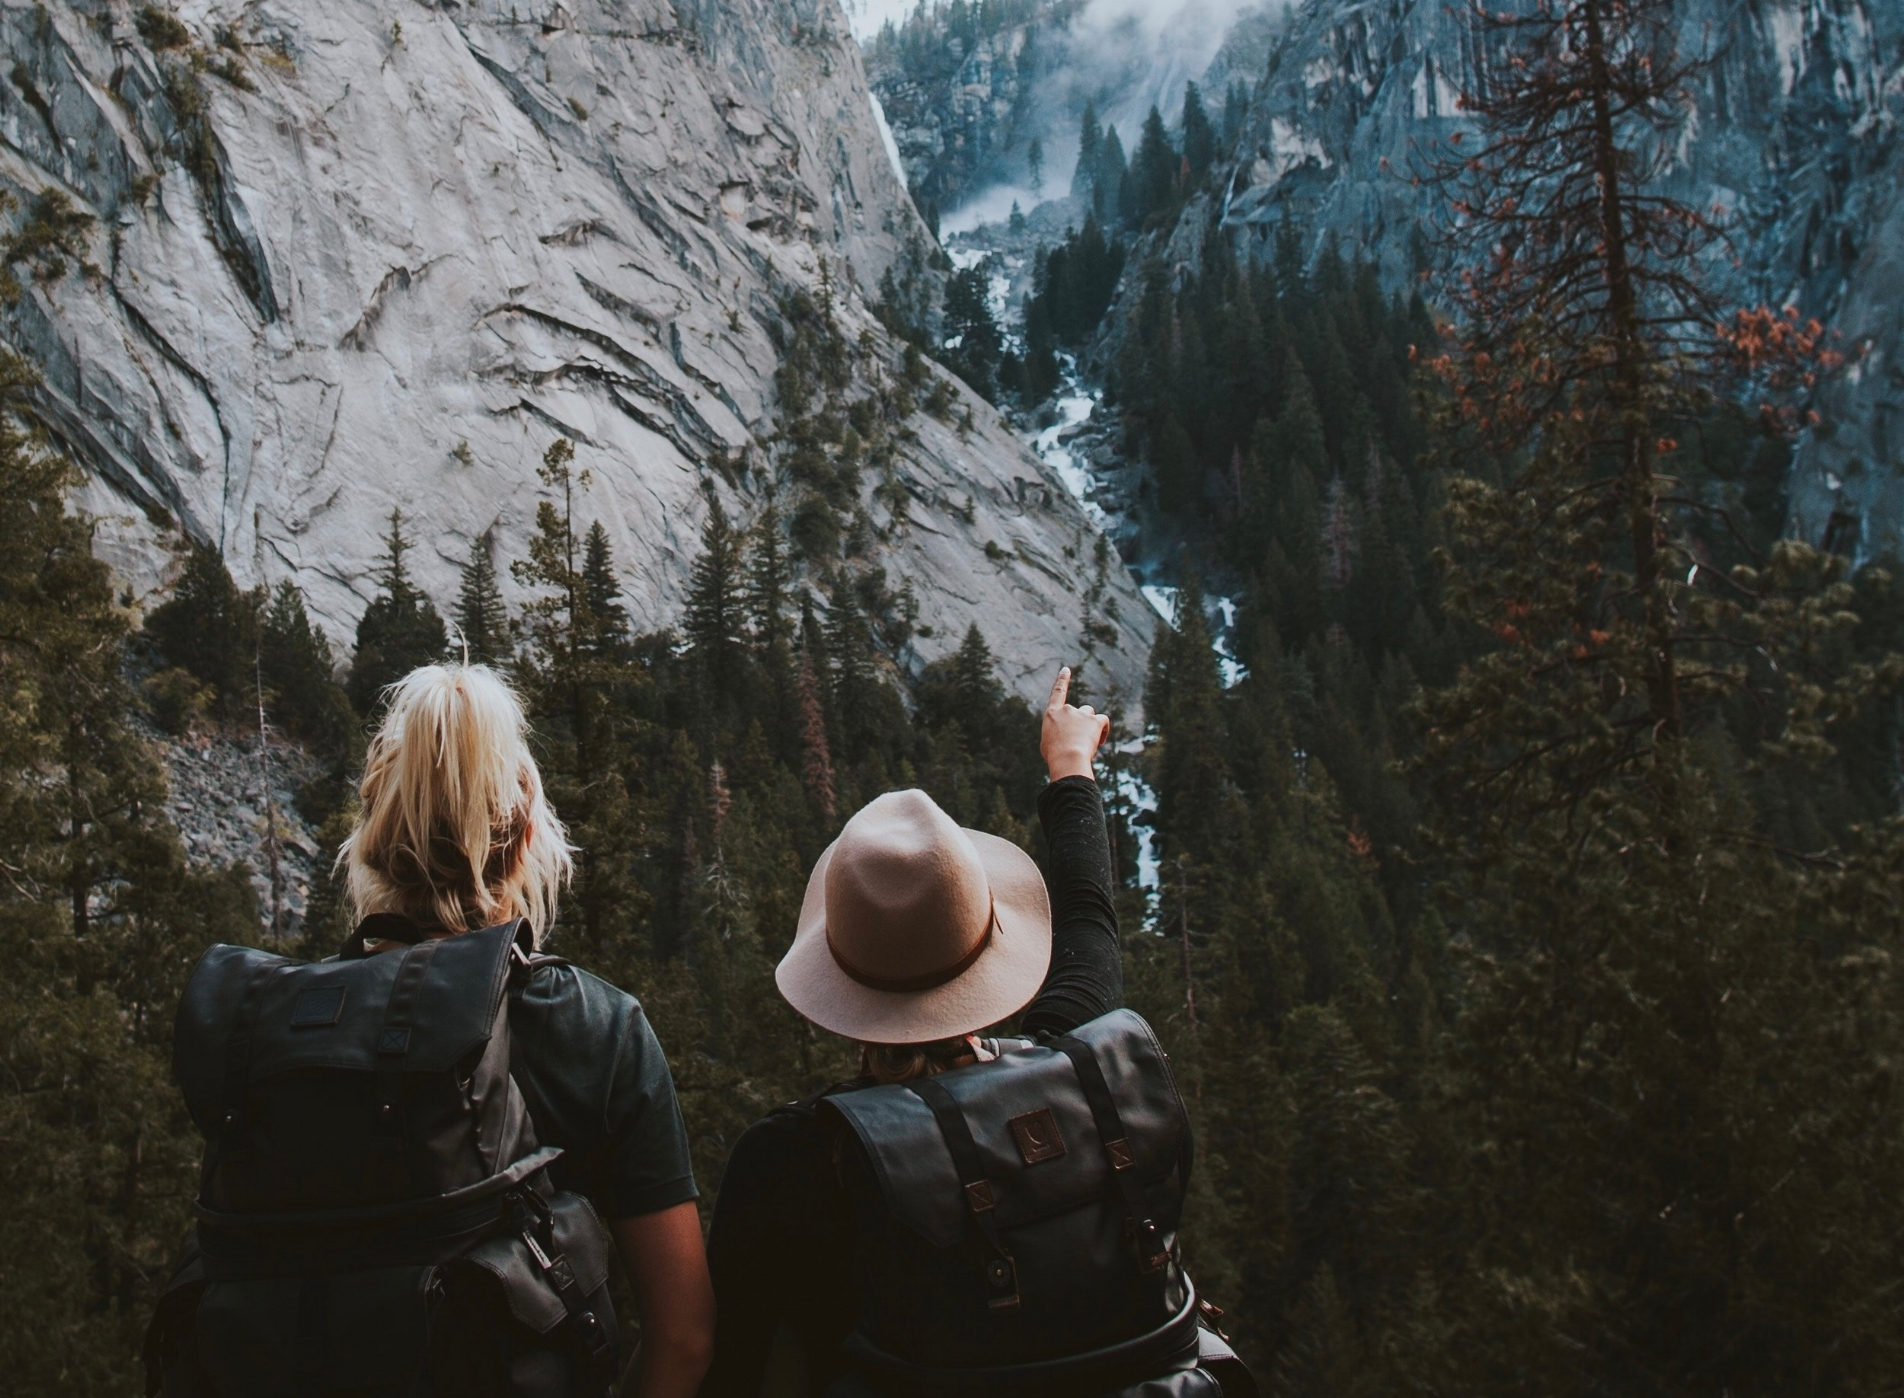 Outdoorsy  - all good things are wild and free